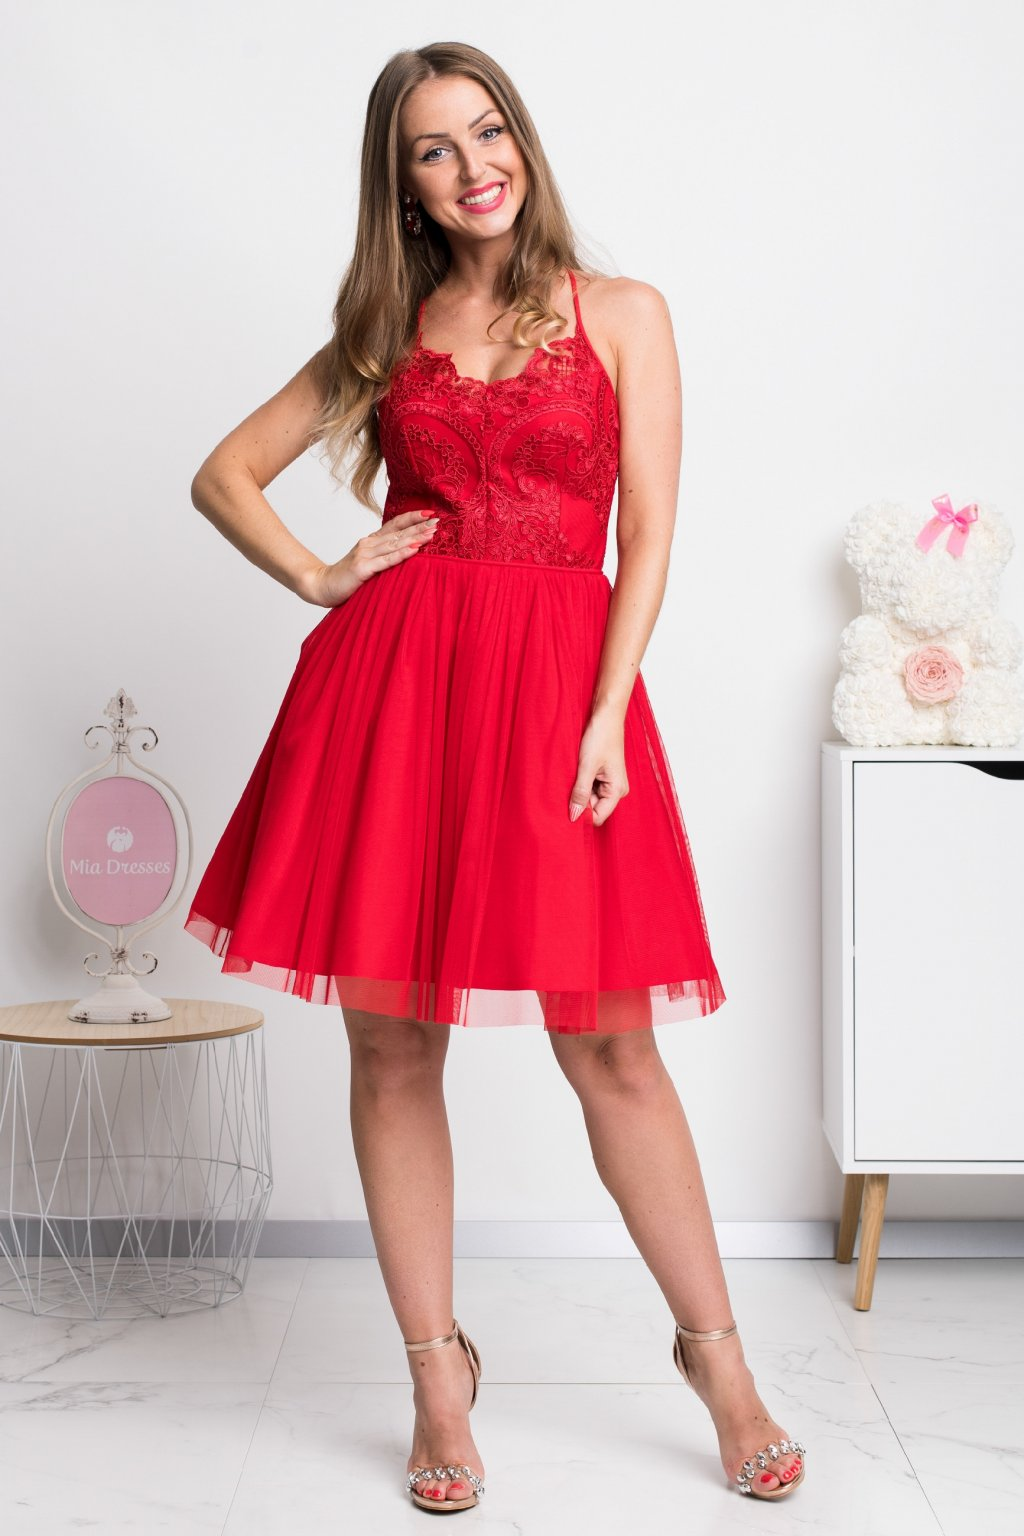 Red spaghetti strap formal short dress